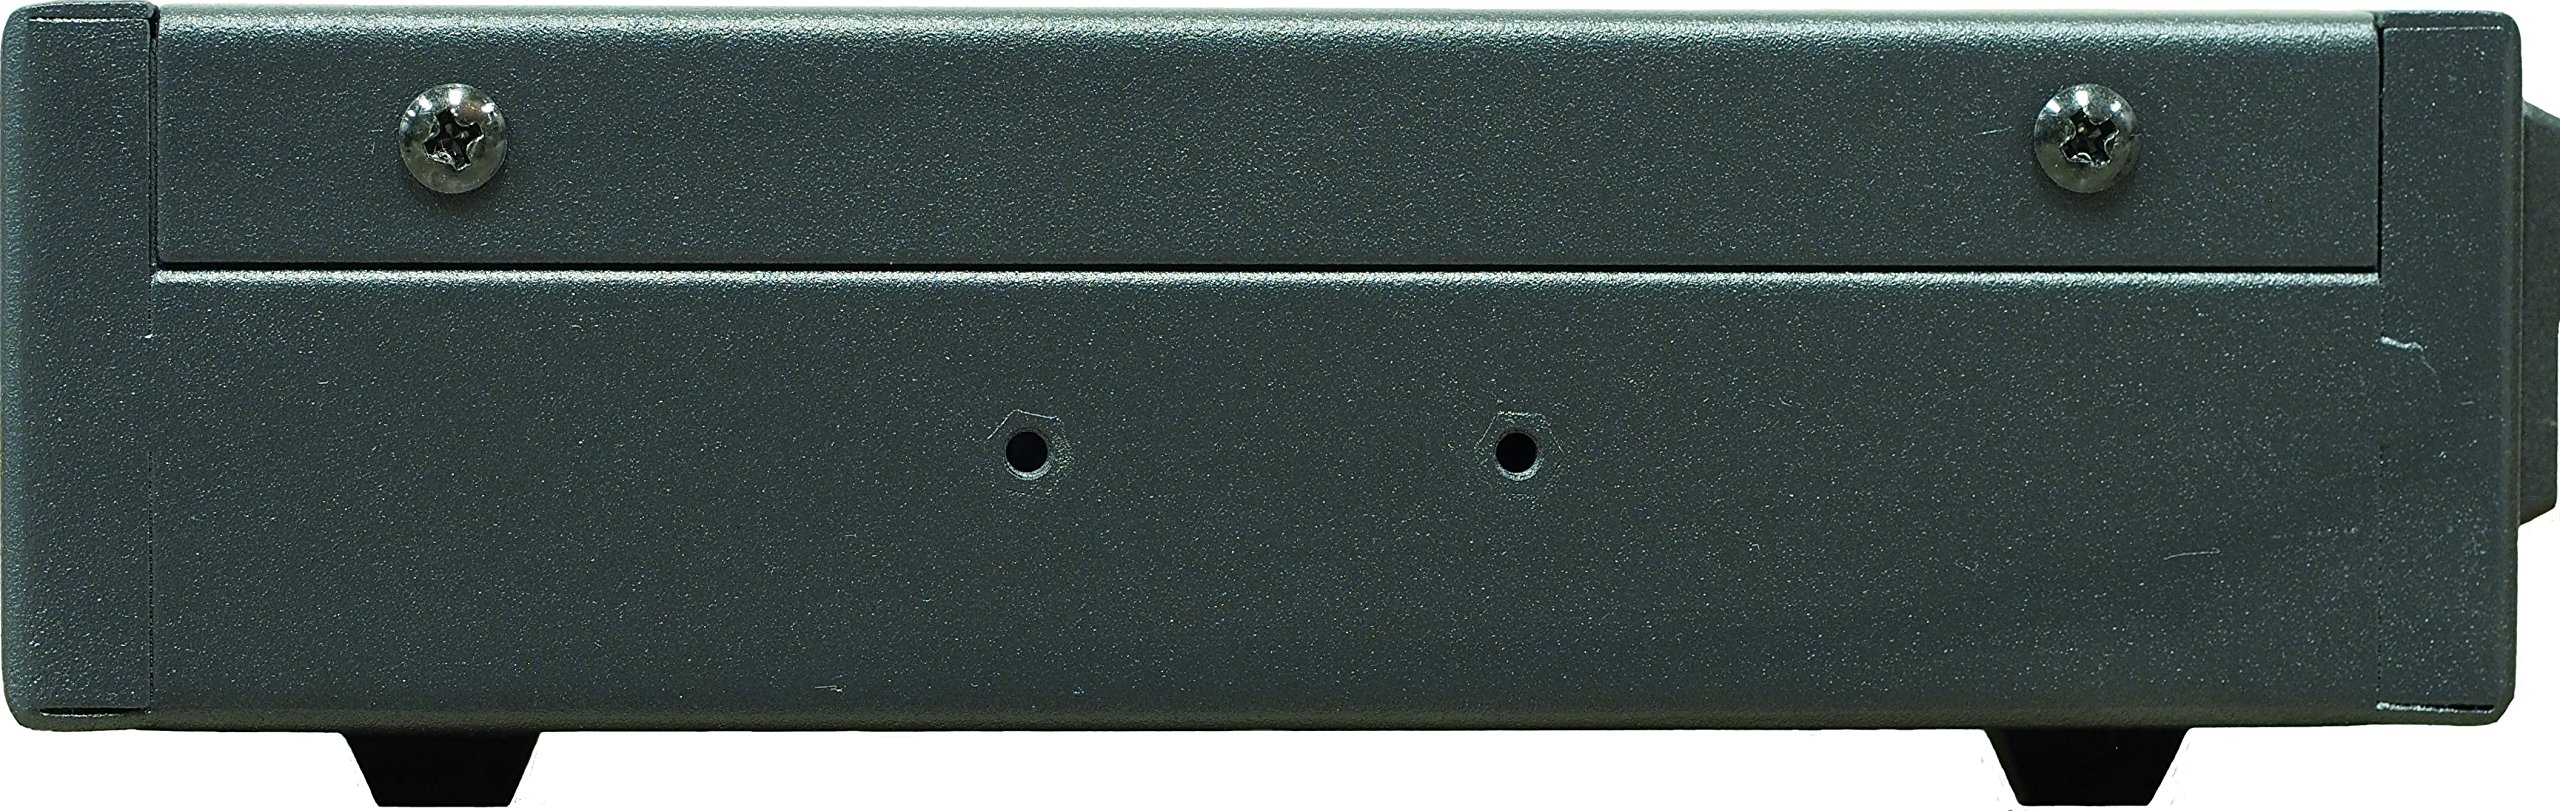 Remote Power Switch NP-02 2 Switchable Outlets. UL-STD TUV listed. Designed, manufactured and supported in USA. Control Via Web, Telnet, RS-232, External Modem interface. by Synaccess (Image #3)